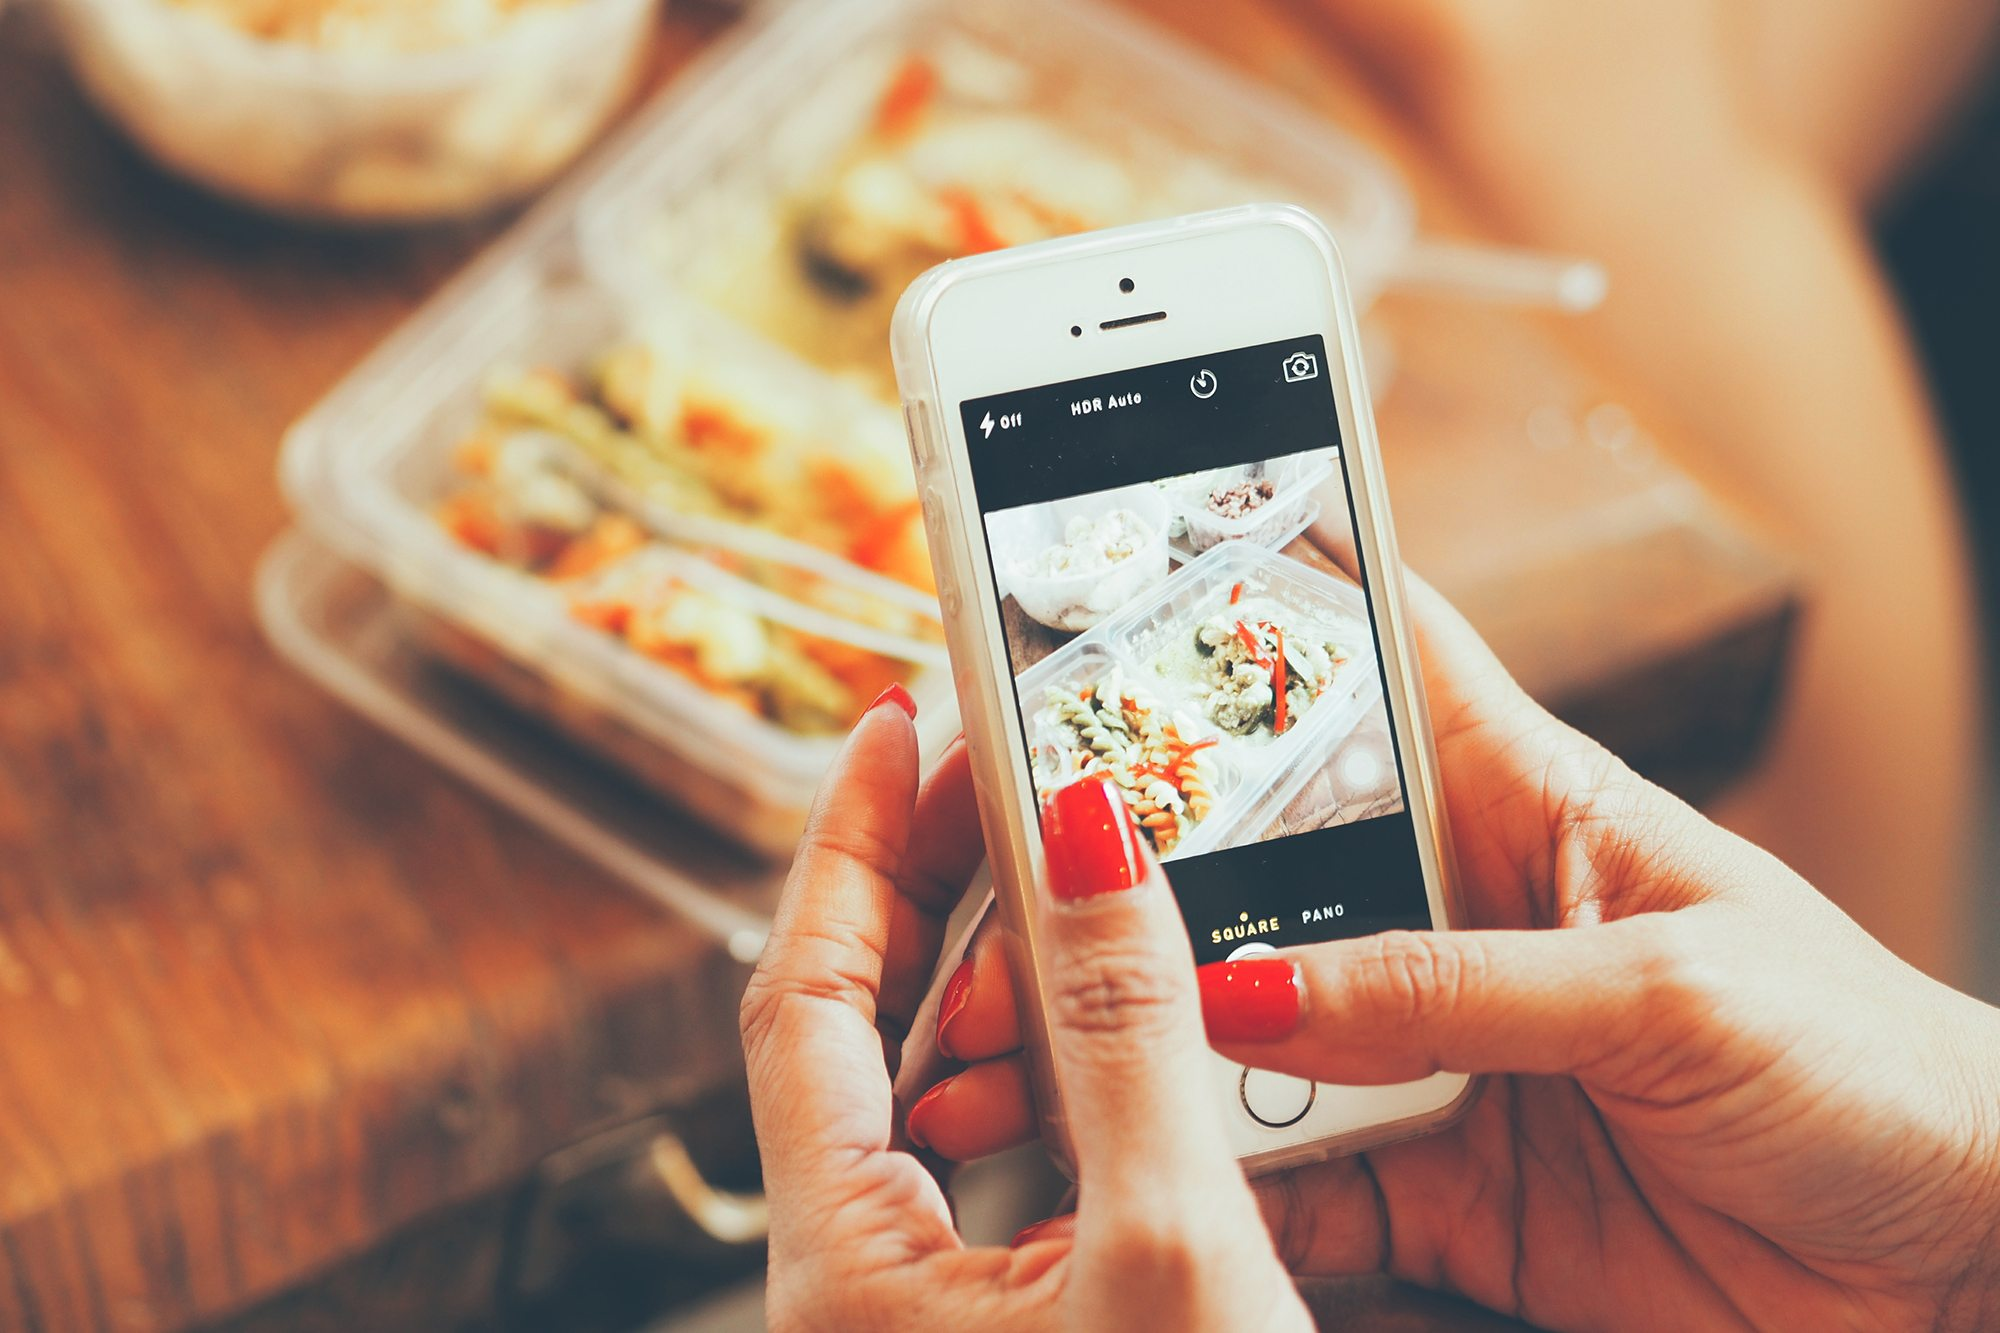 Diner taking picture of food with smartphone